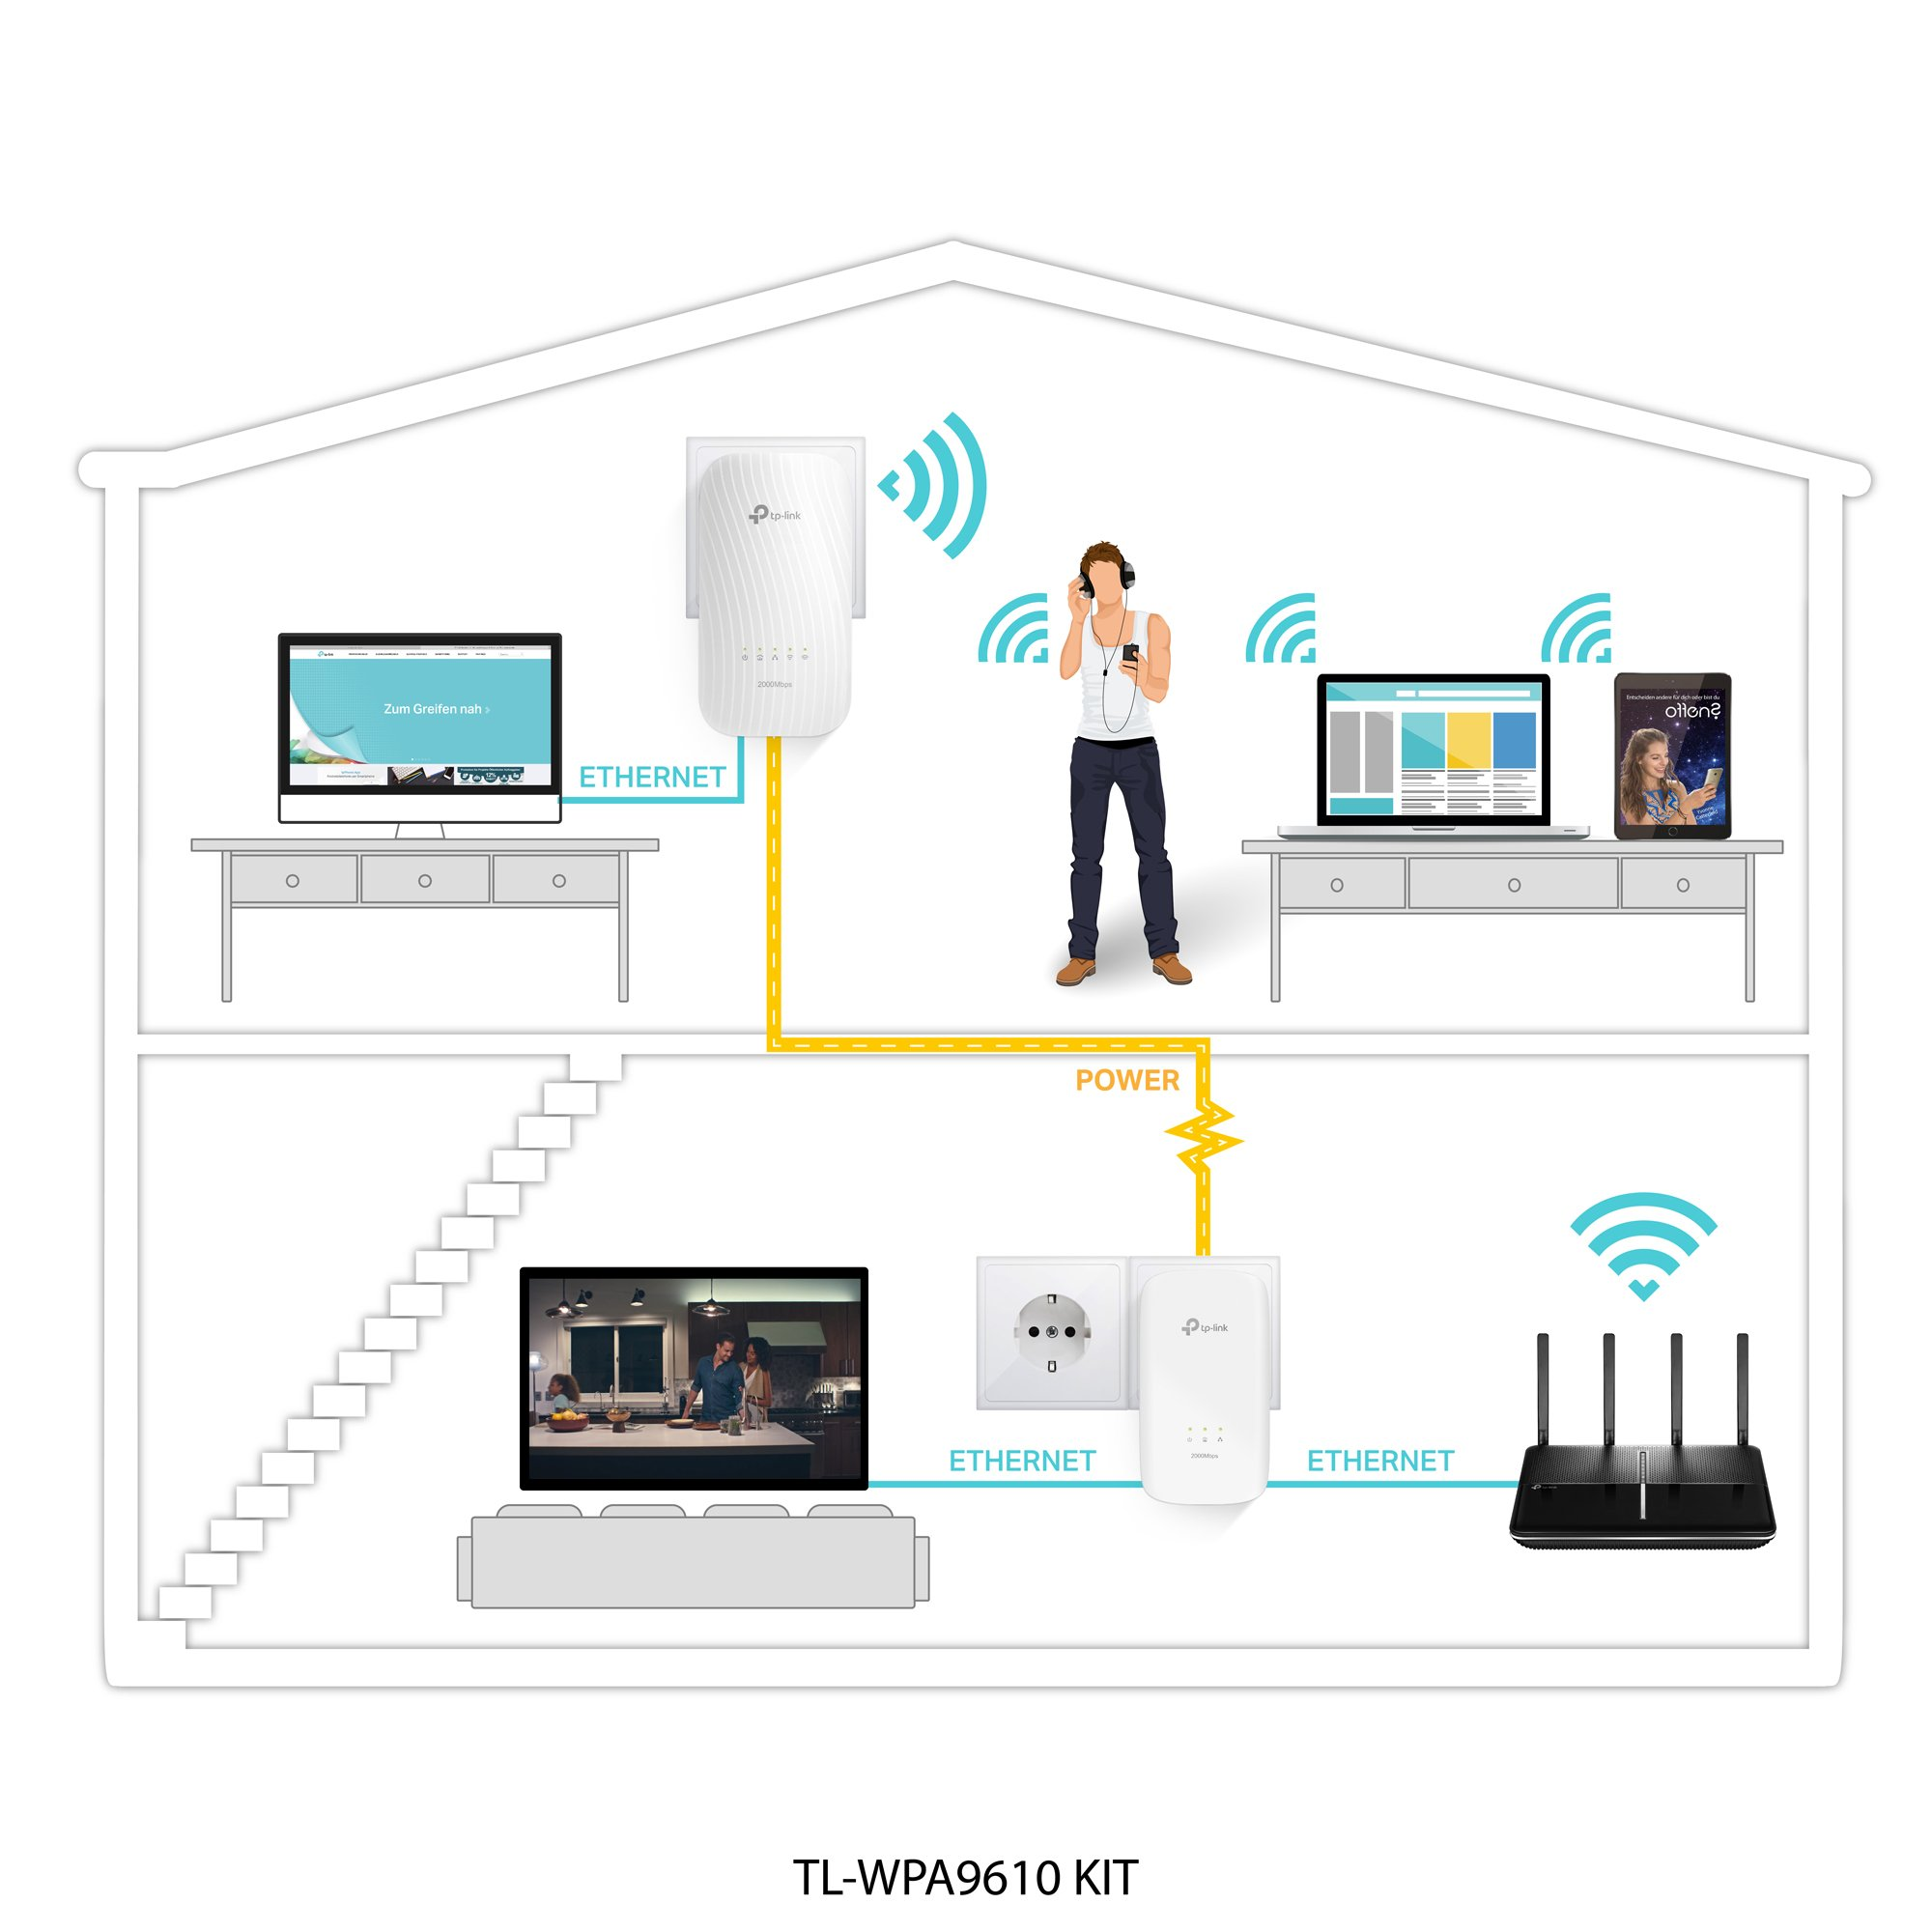 TP-Link AV2000 / AC1200 Gigabit Powerline AC Wi-Fi Kit | HomePlug AV2  Technology | Plug, Pair, and Play (TL-WPA9610 KIT)